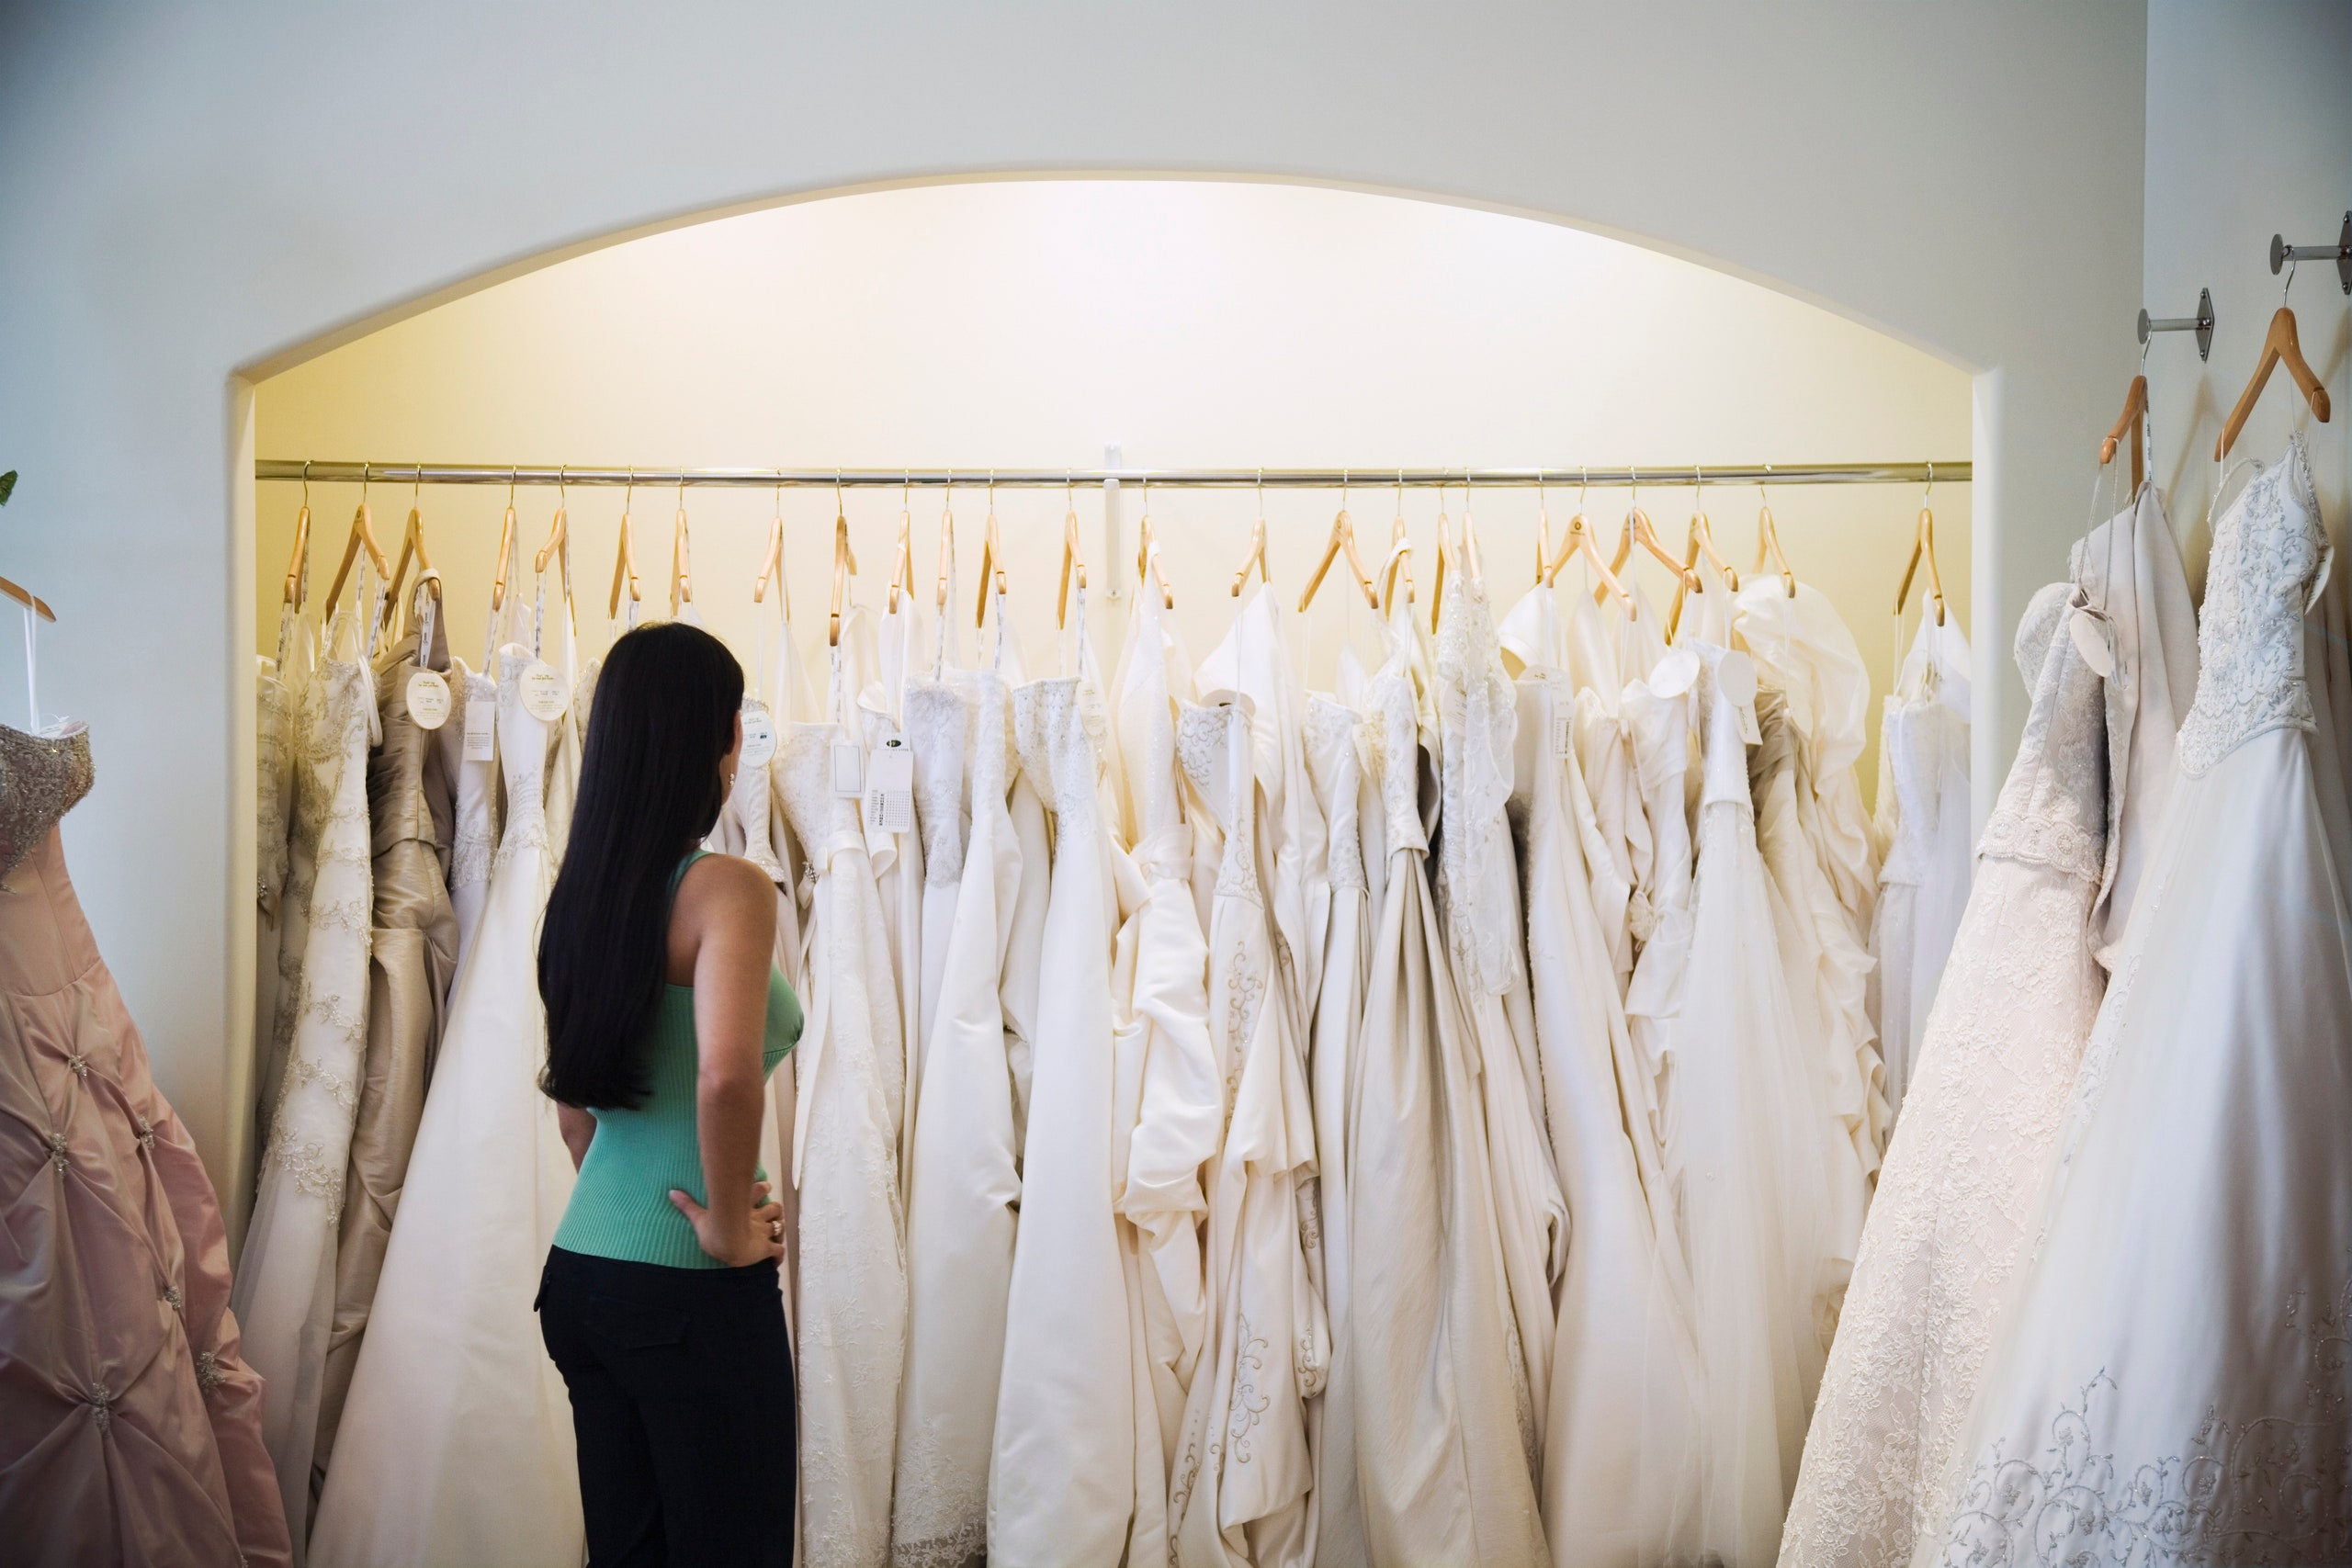 Undergarments to Wear Under Party Dresses